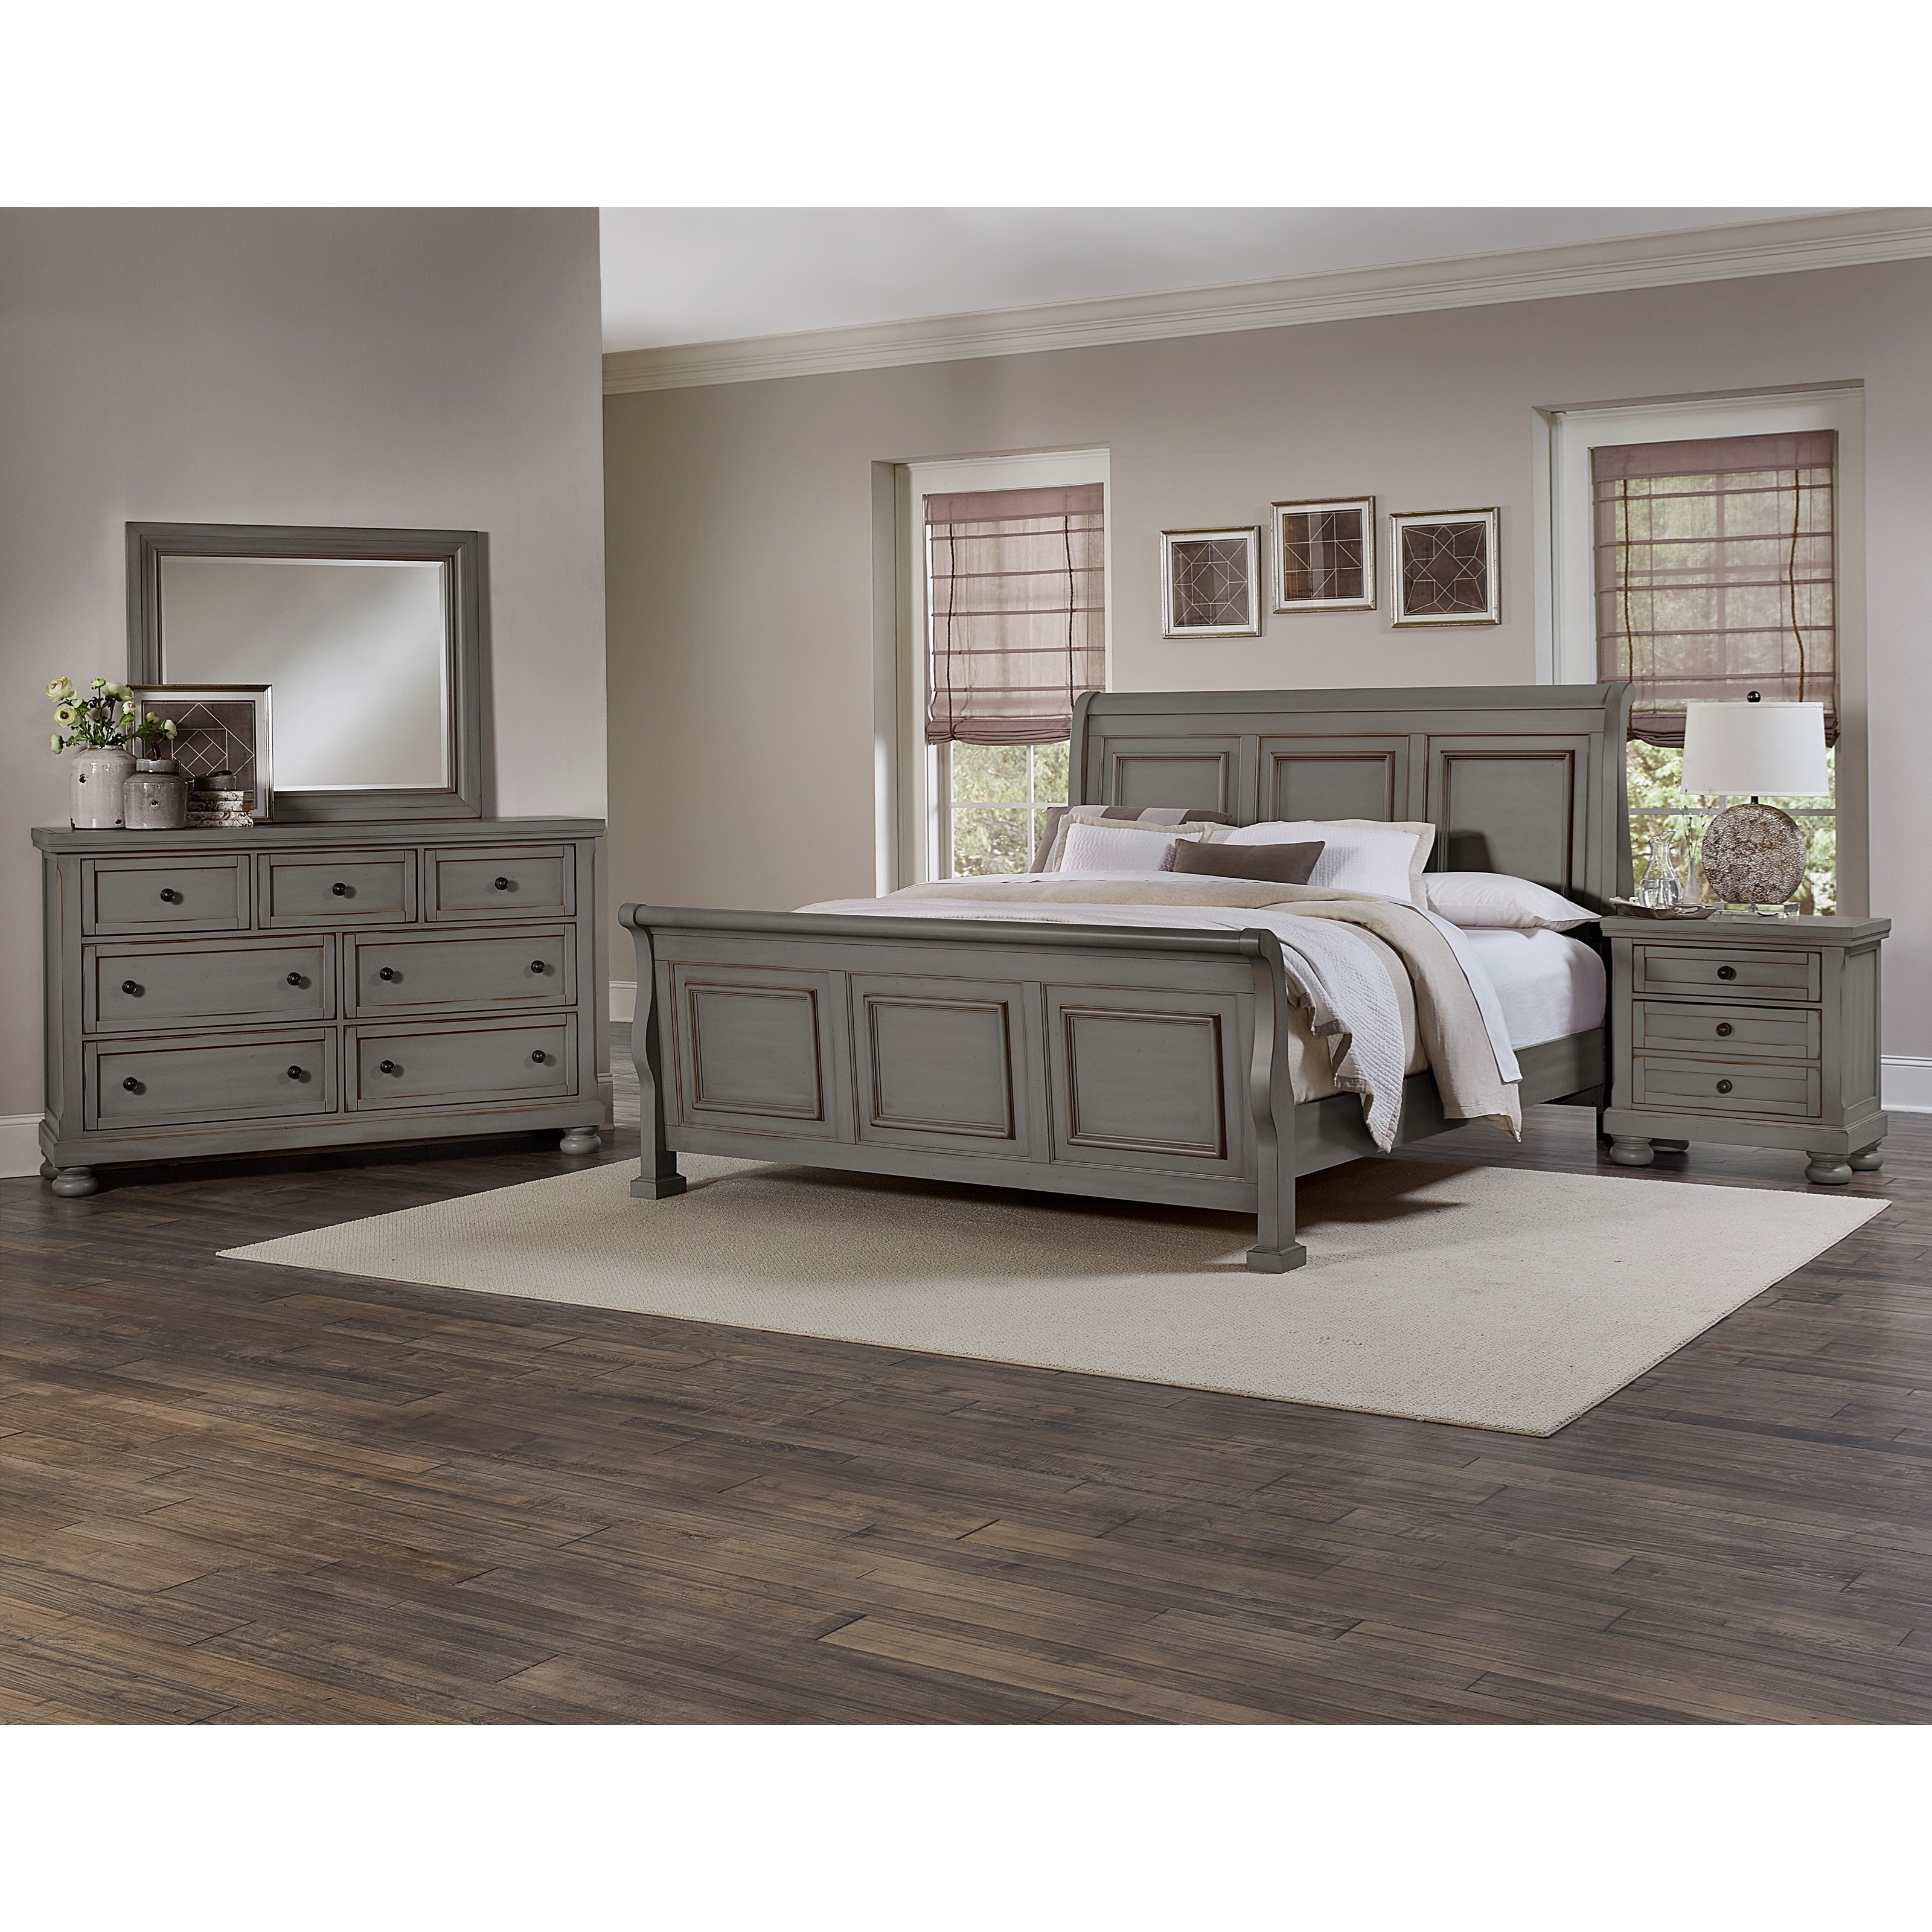 Vaughan bassett reflections king bedroom group dunk for Bedroom furniture groups